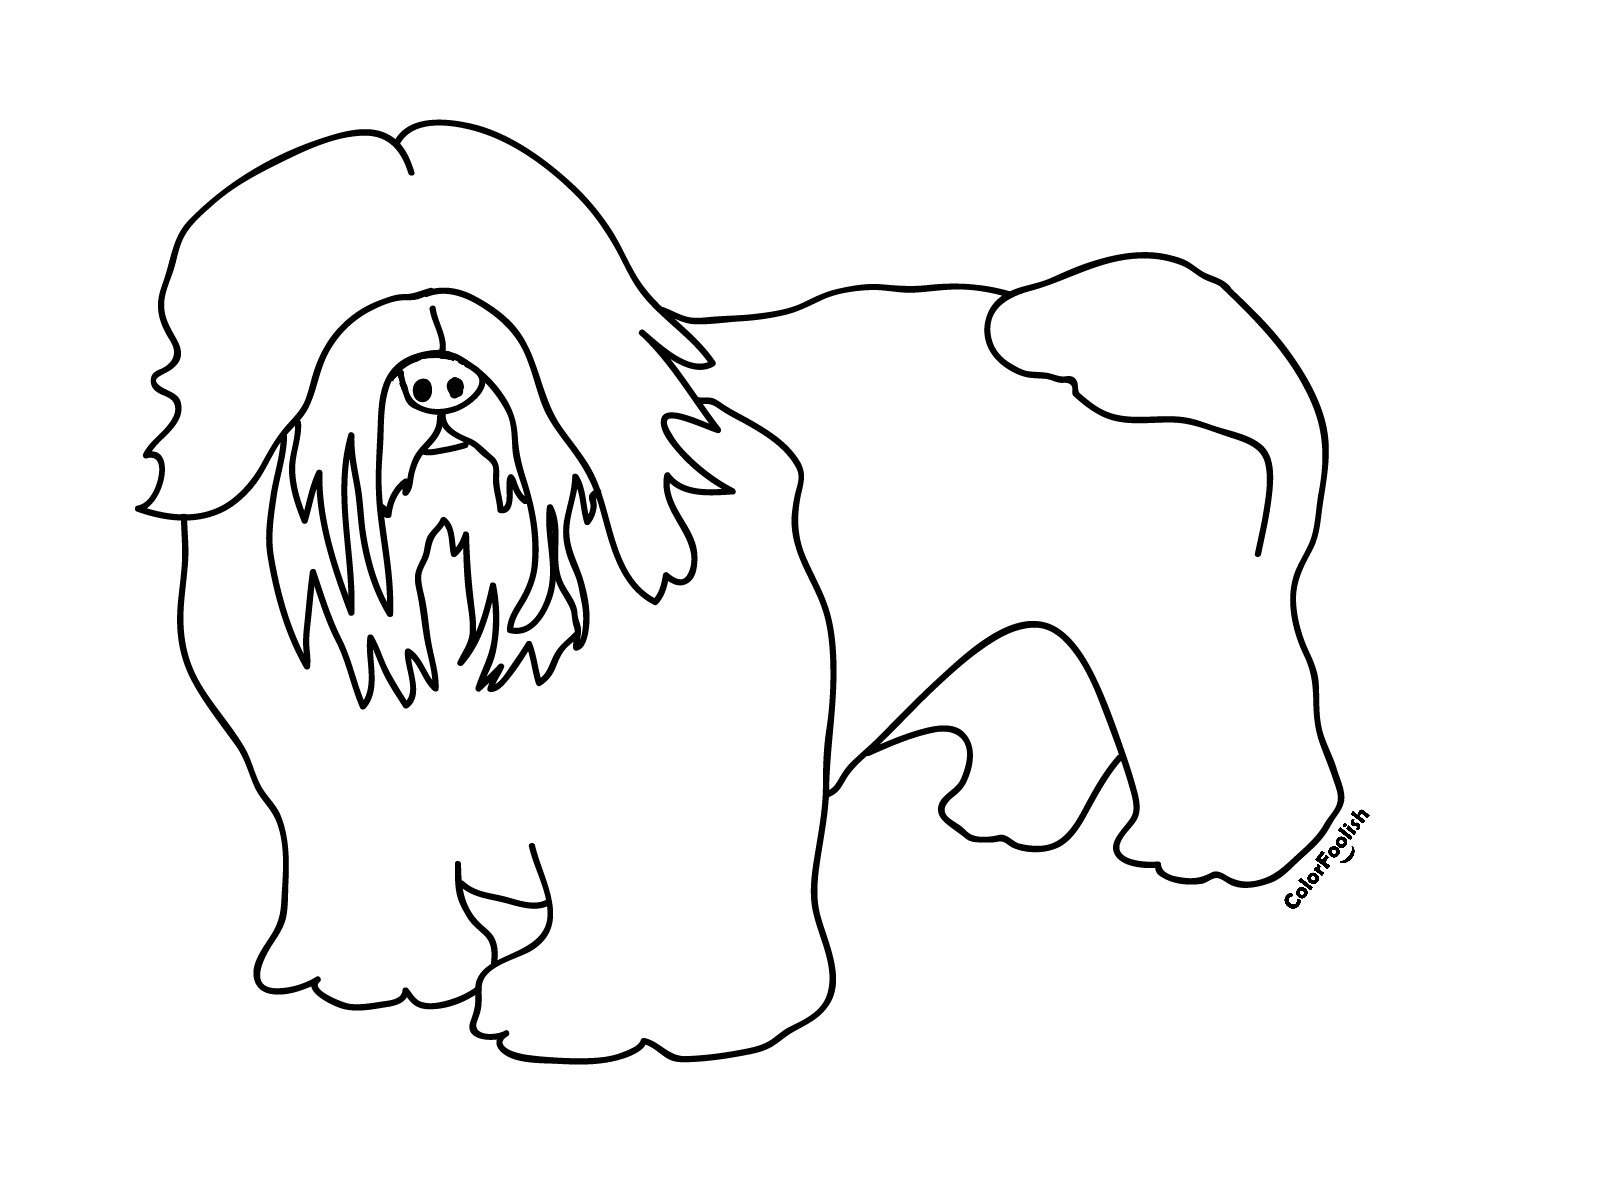 Coloring page of a puli dog